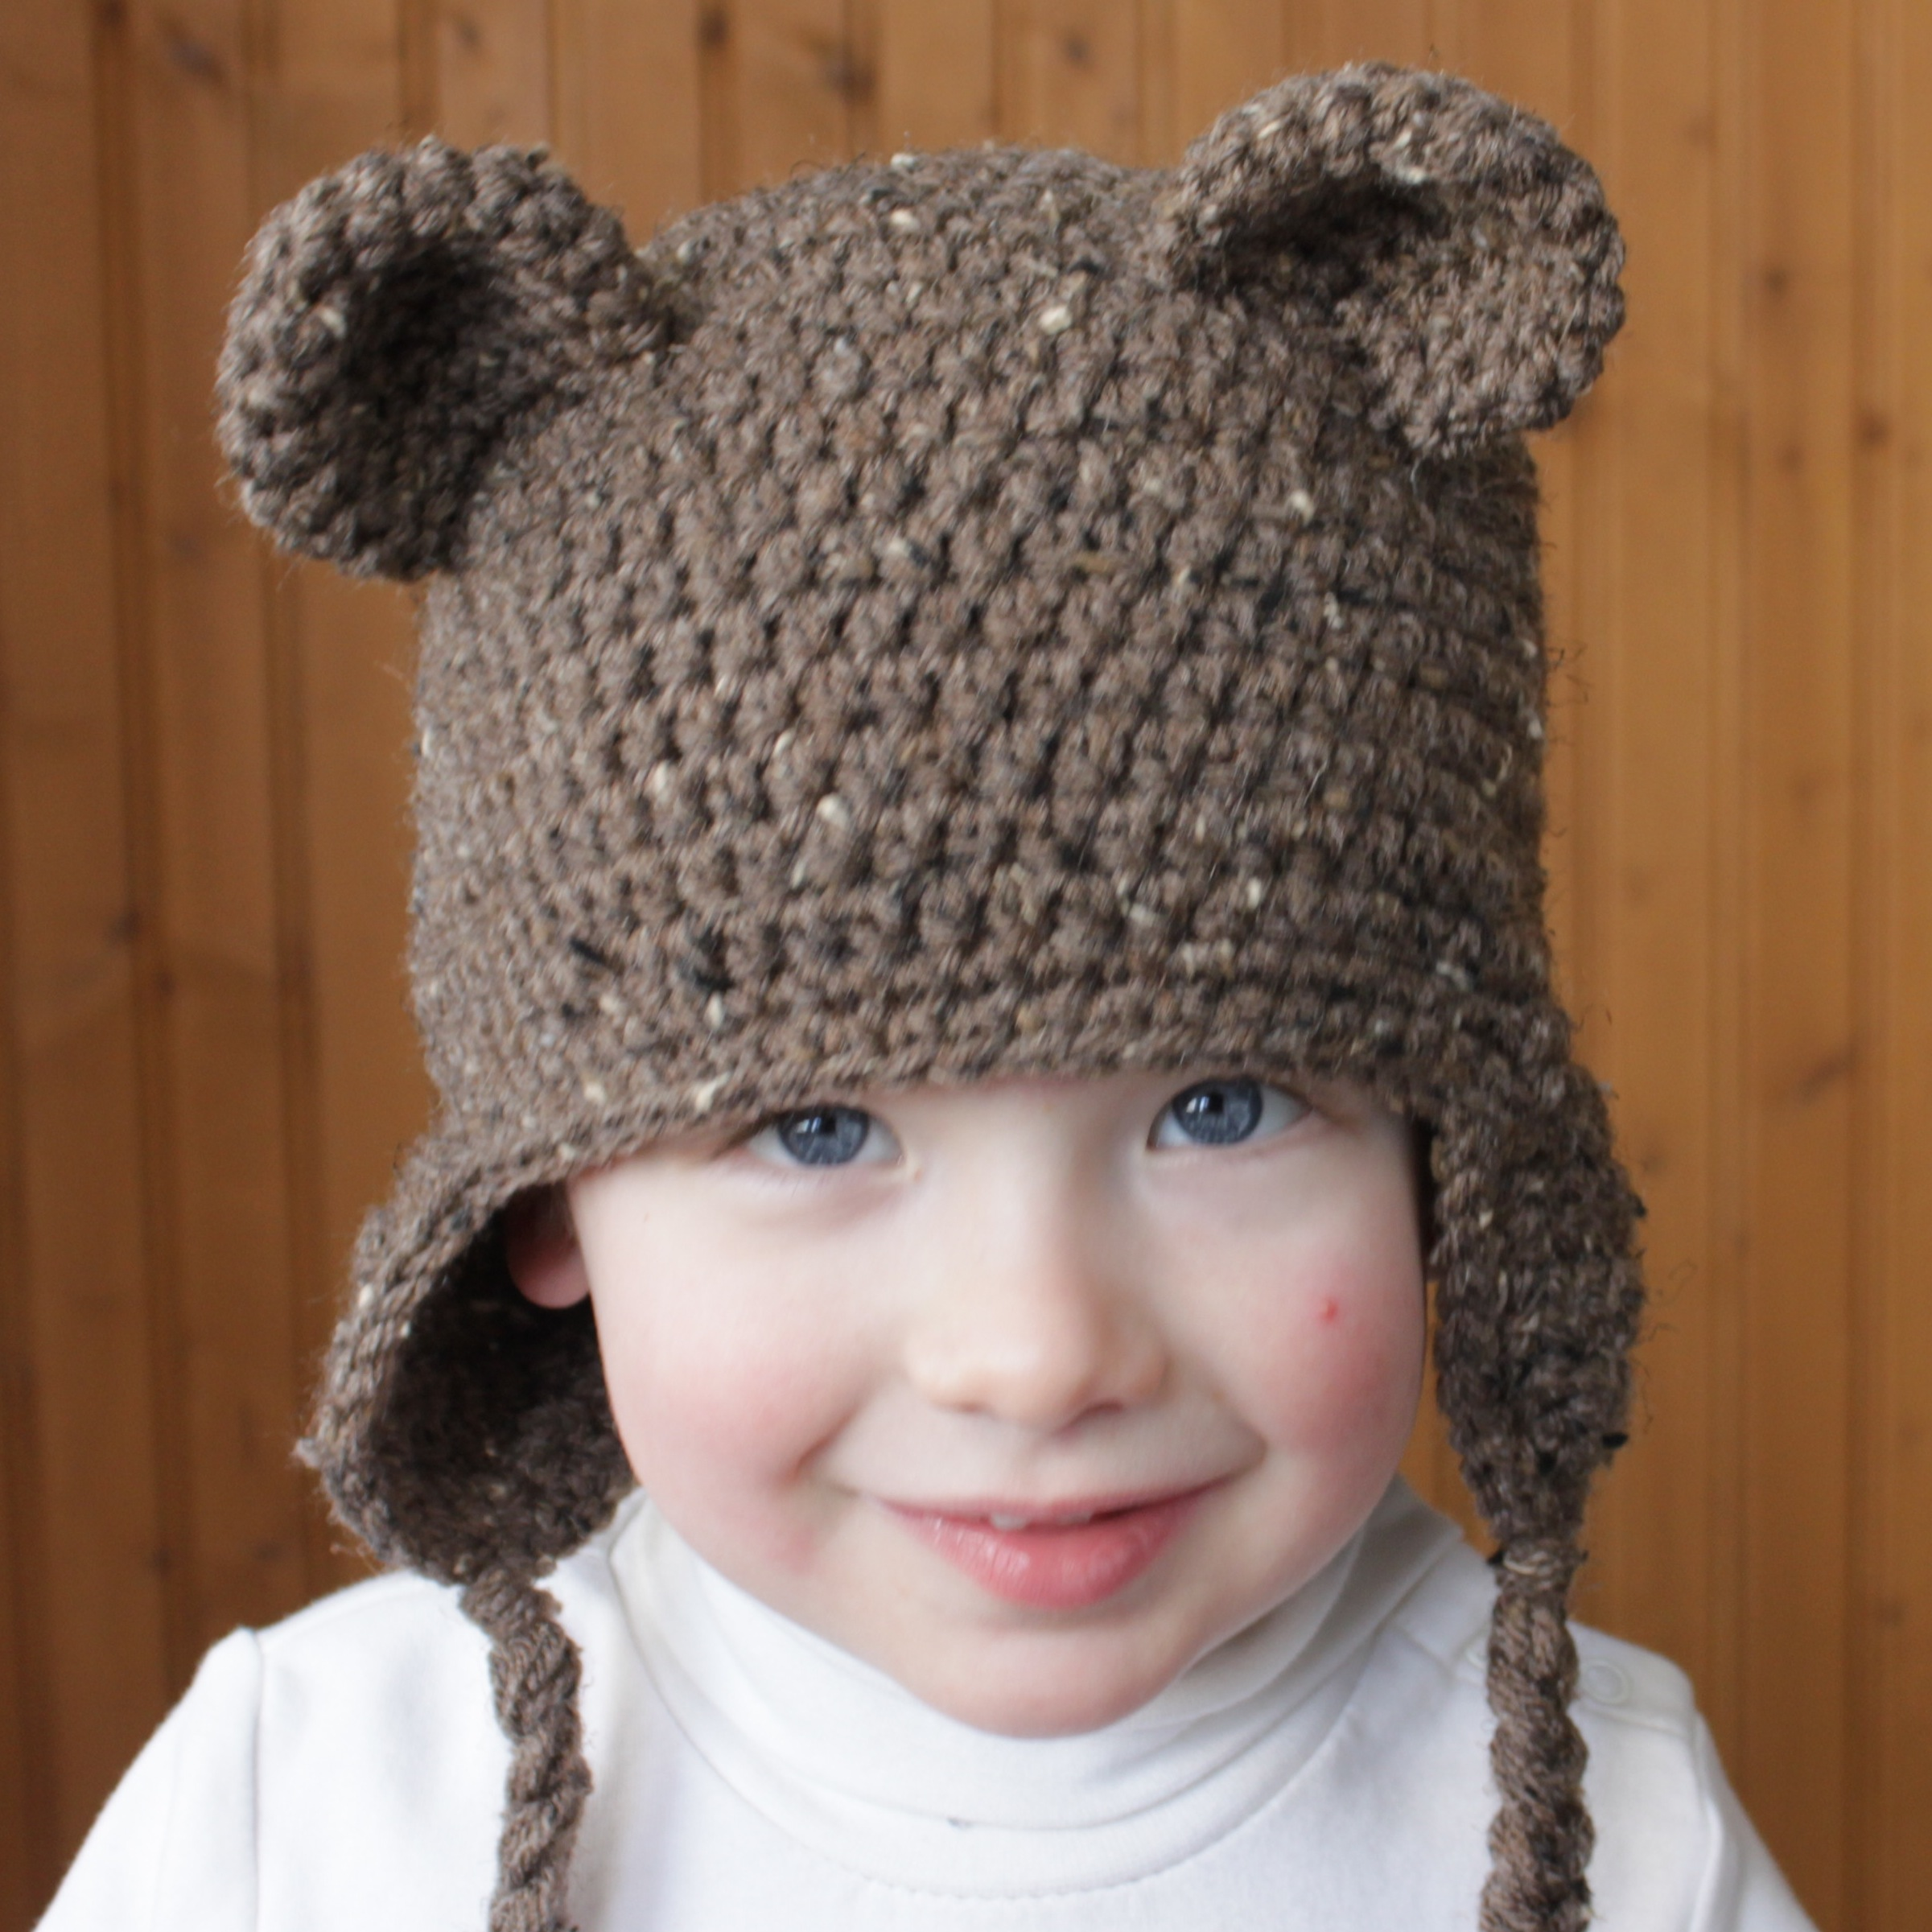 Crochet Patterns Hats For Toddlers : 34 Crochet Teddy Bear Patterns Guide Patterns